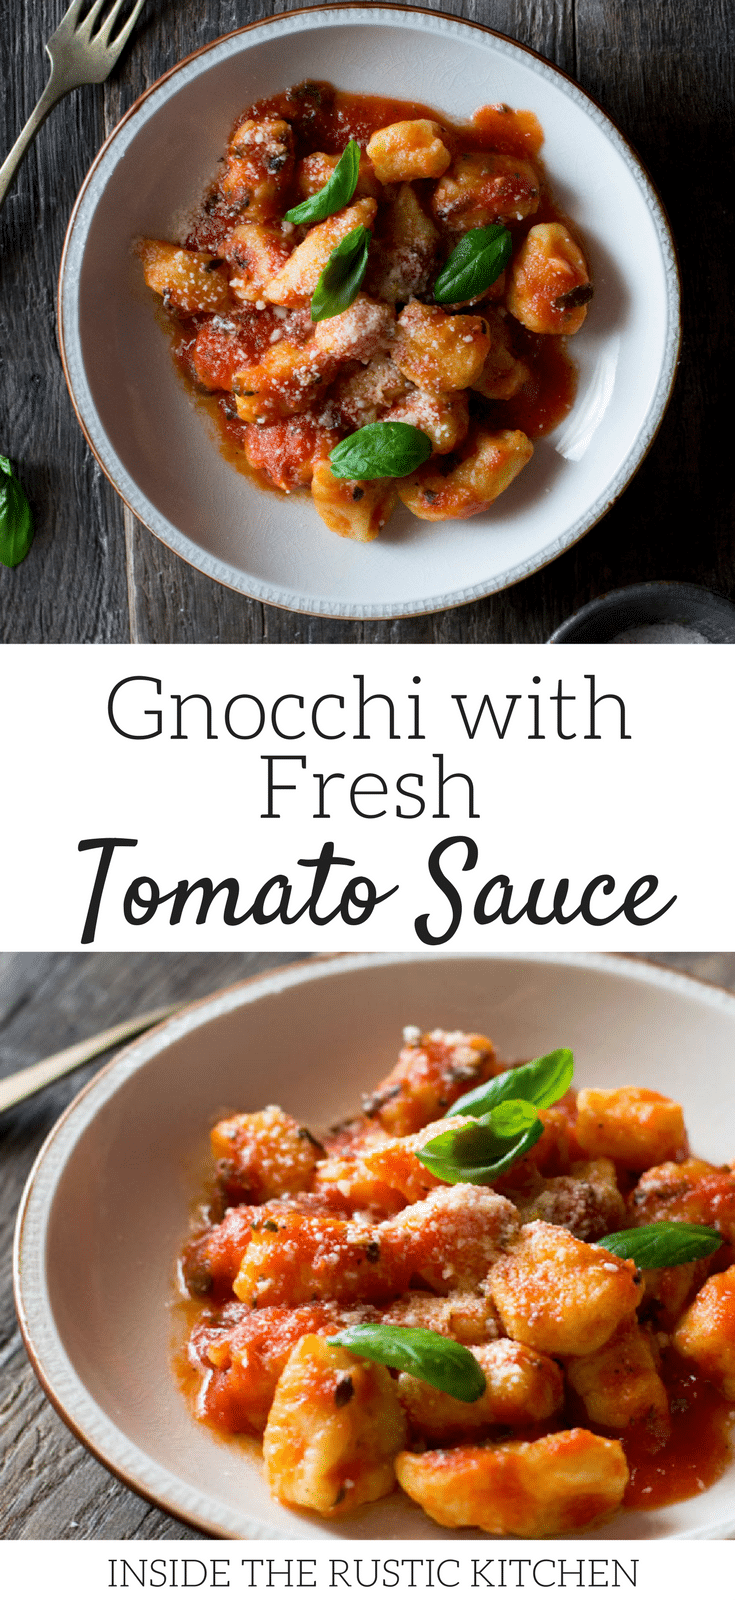 Light and soft gnocchi with tomato recipe sauce made with ripe, fresh tomatoes, oregano and garlic. Extremely simple and easy to make, a great authentic Italian tomato sauce recipe that's great with pasta and gnocchi. For more authentic Italian recipes visit Inside The Rustic Kitchen